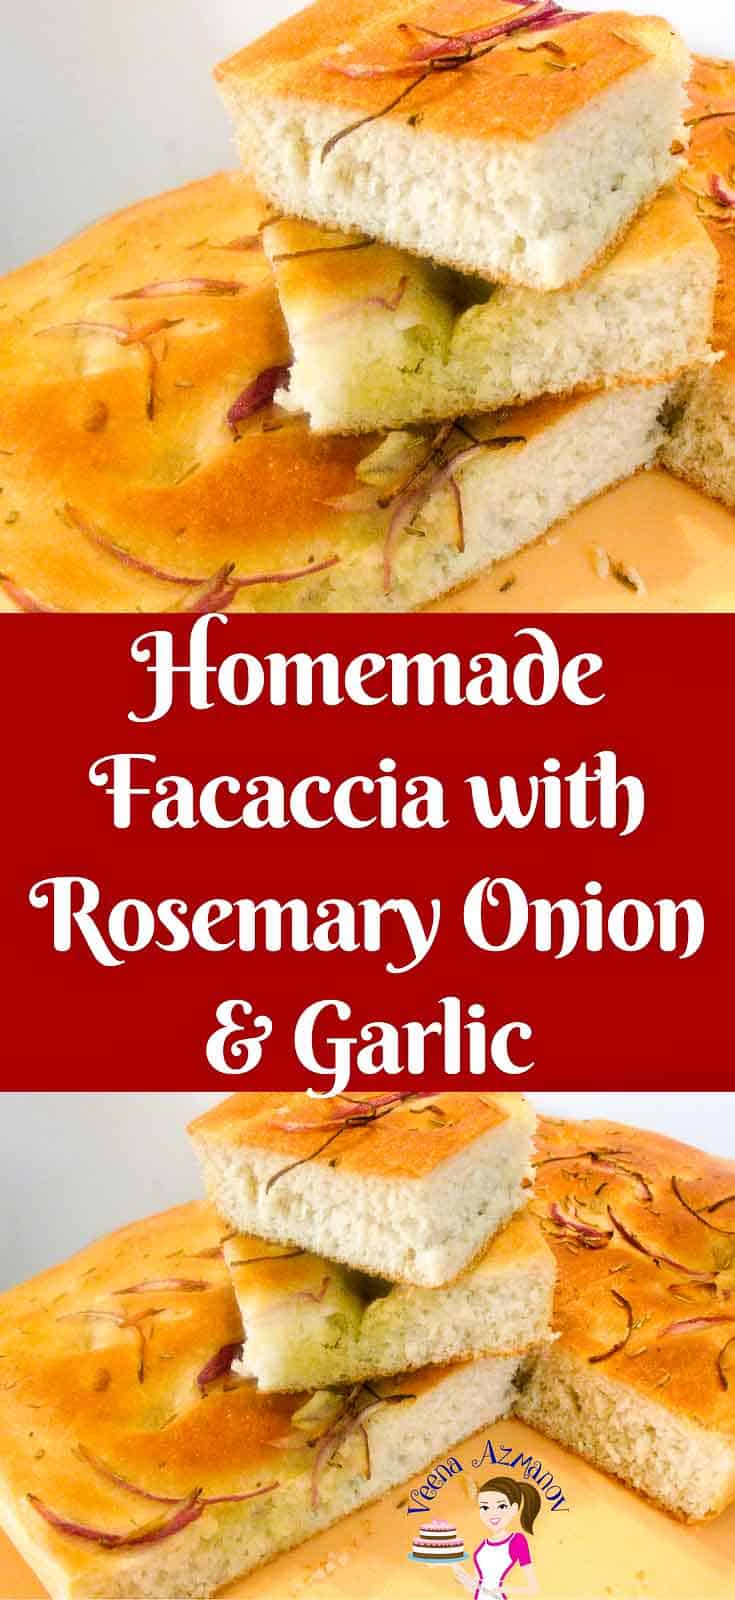 Pinterest Image - This Italian classic of homemade focaccia recipe is an absolute treat with any meal or just on it's own. Baked with some fragrant rosemary, sweet red onions and pungent garlic. Soft light bread on the inside with a golden delicious olive oil infused crust on the outside.